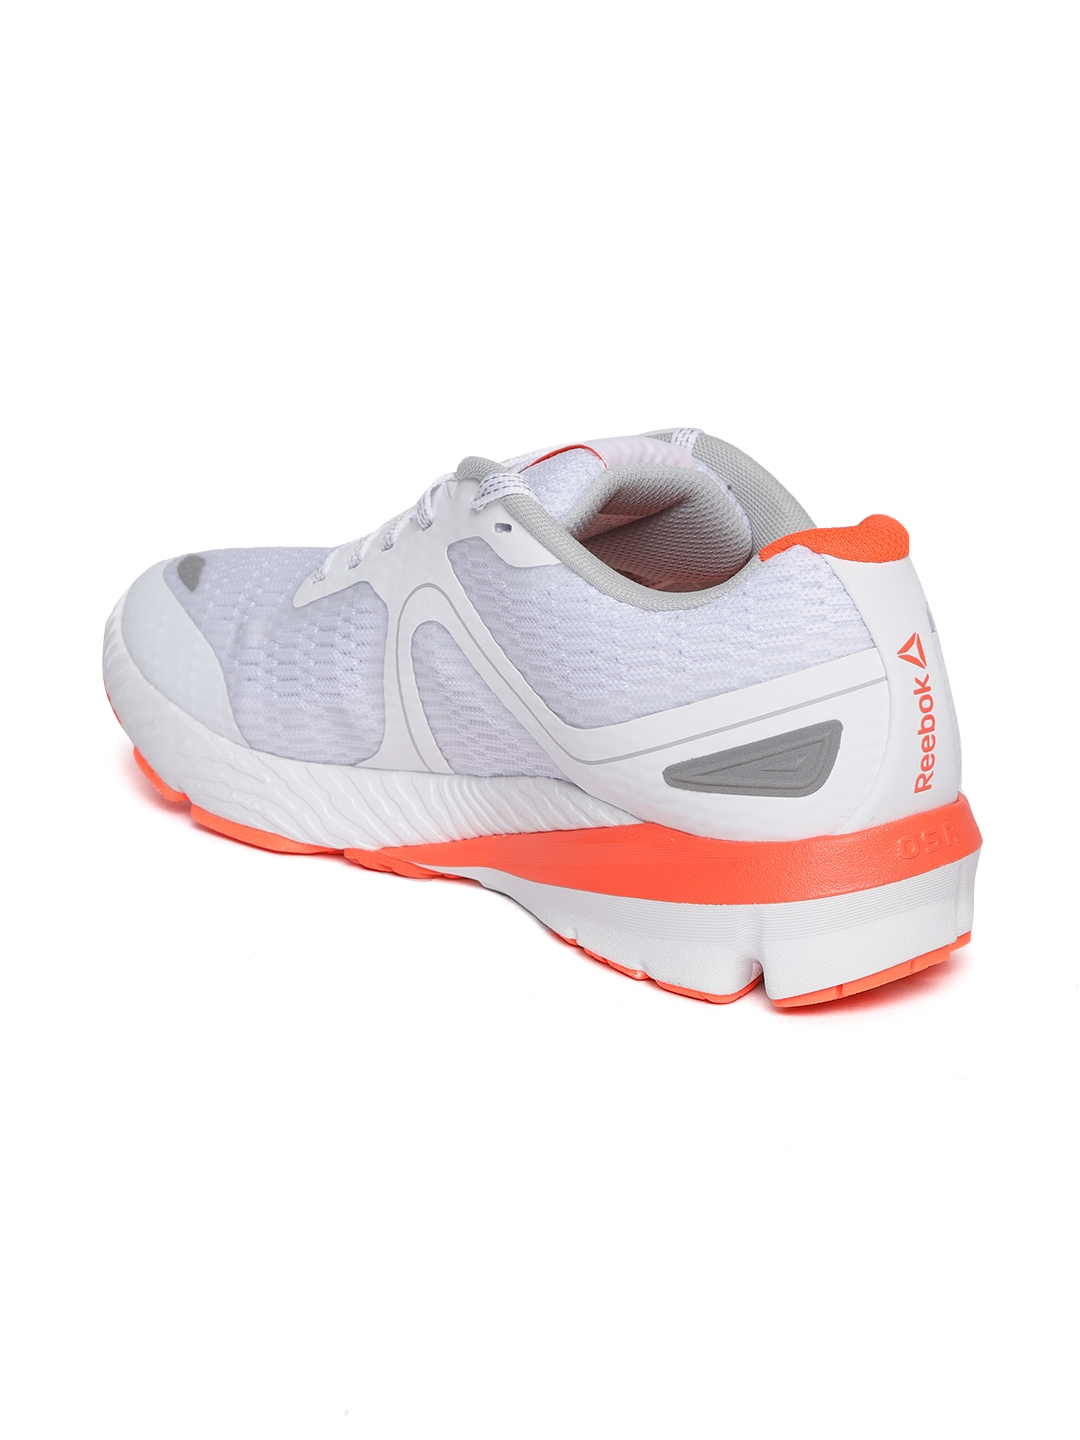 d0d4d5a4110 Buy Reebok Men White OSR Harmony Road 2 Running Shoes - Sports Shoes ...